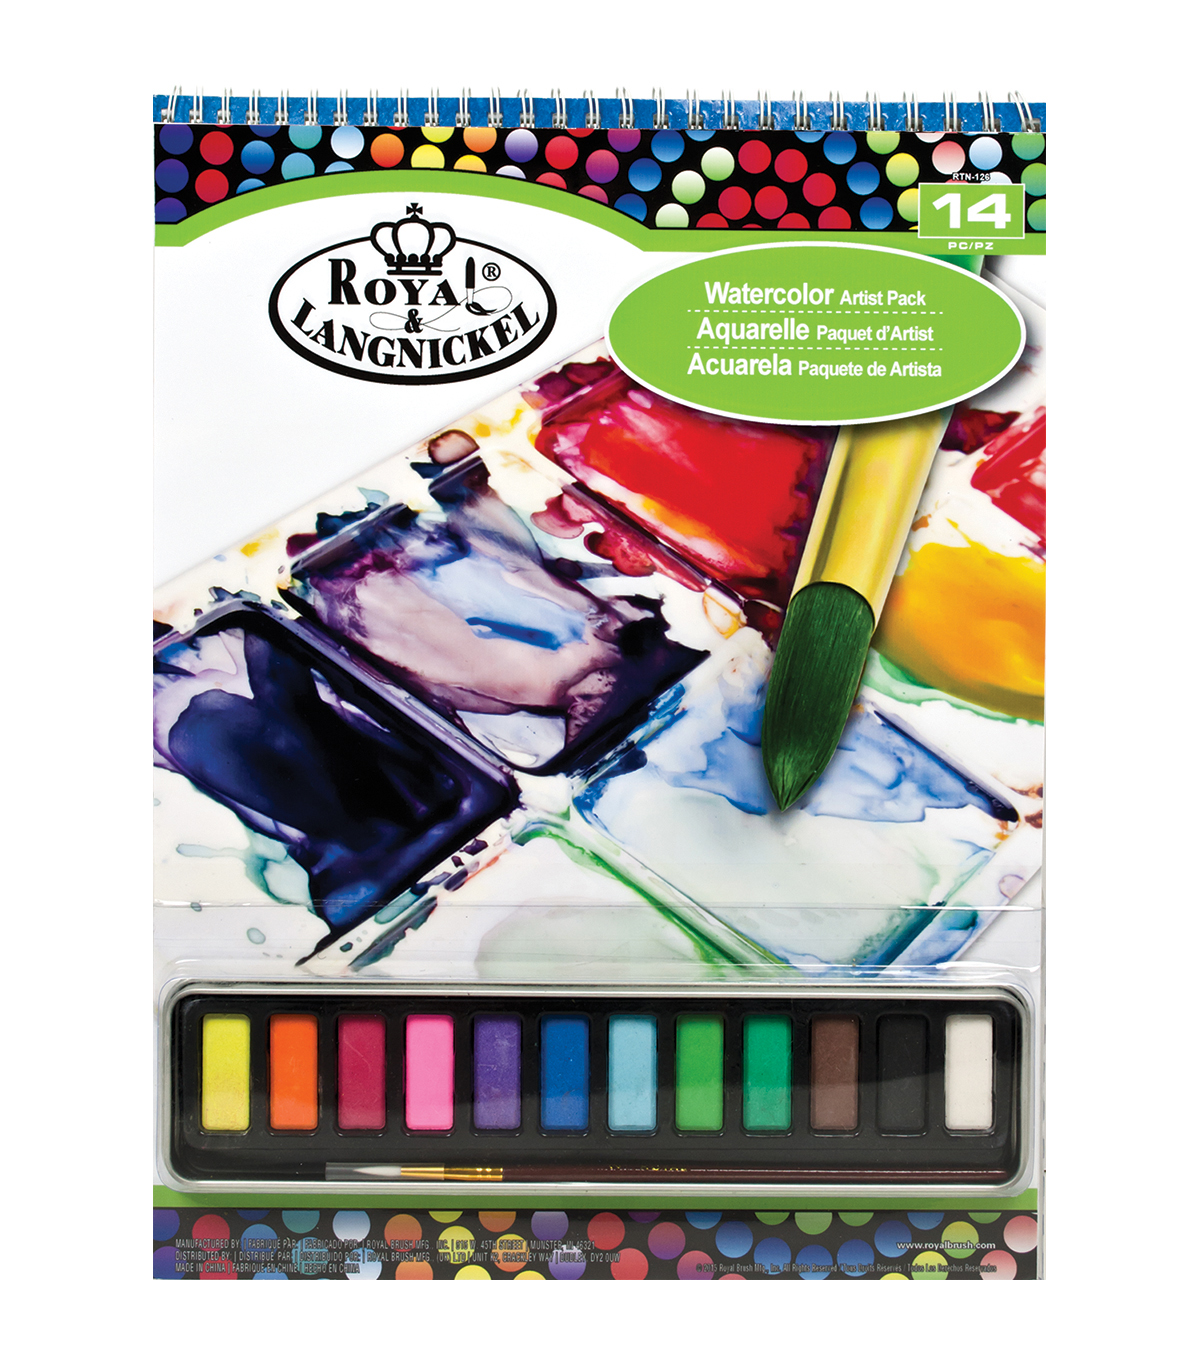 Royal Langnickel Watercolor Artist Pack